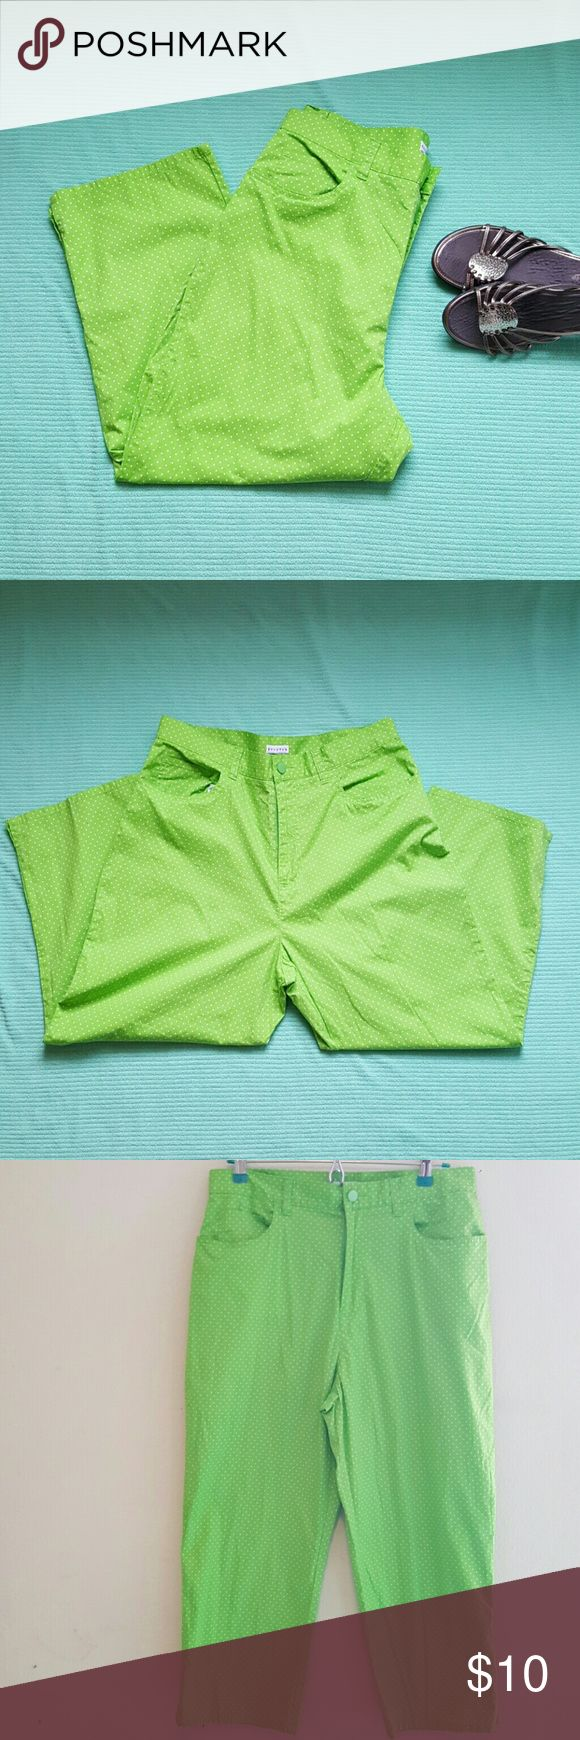 "Polkadots Capri Pants 5 pockets Lime green pants with white polkadots.  Stretch  97% cotton 3% spandex By Carolina Blues 34.5"" long   ??Bubdle for savings. ??I welcome offers using the offer button on anything over $8 Carolina Blues Pants Capris"